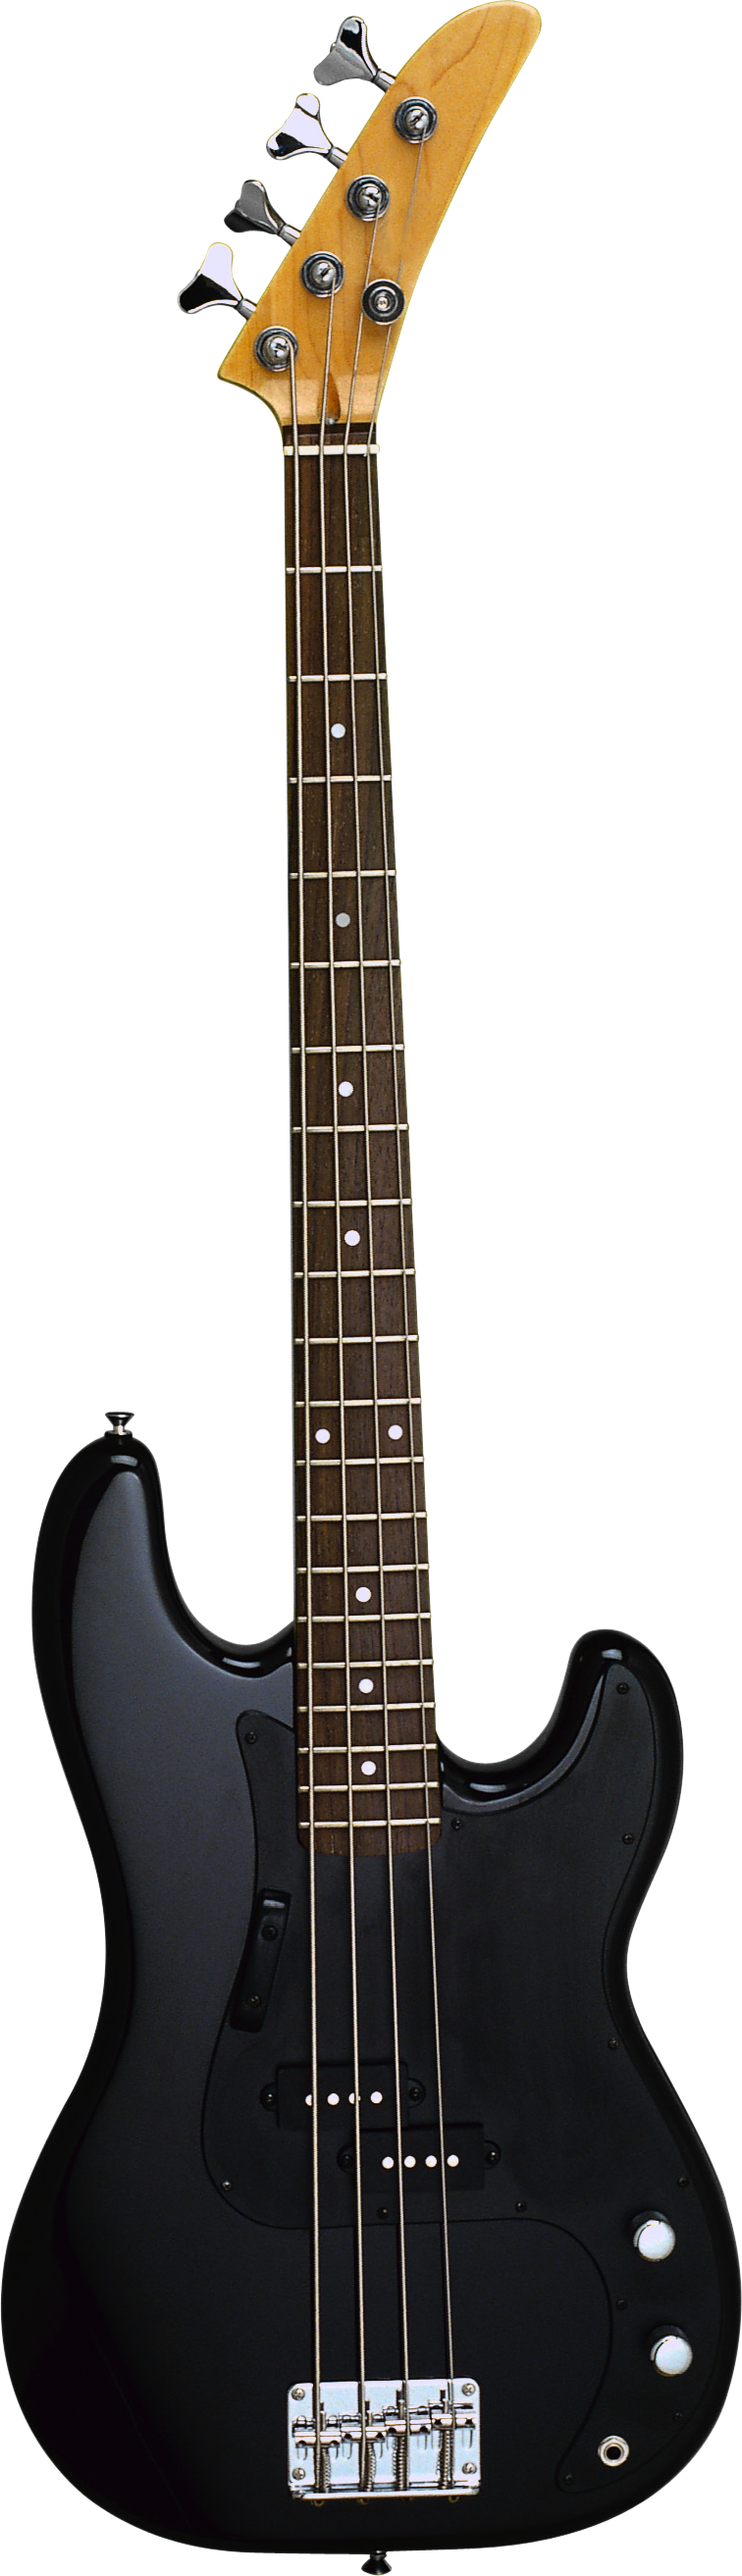 Black electric guitar PNG image